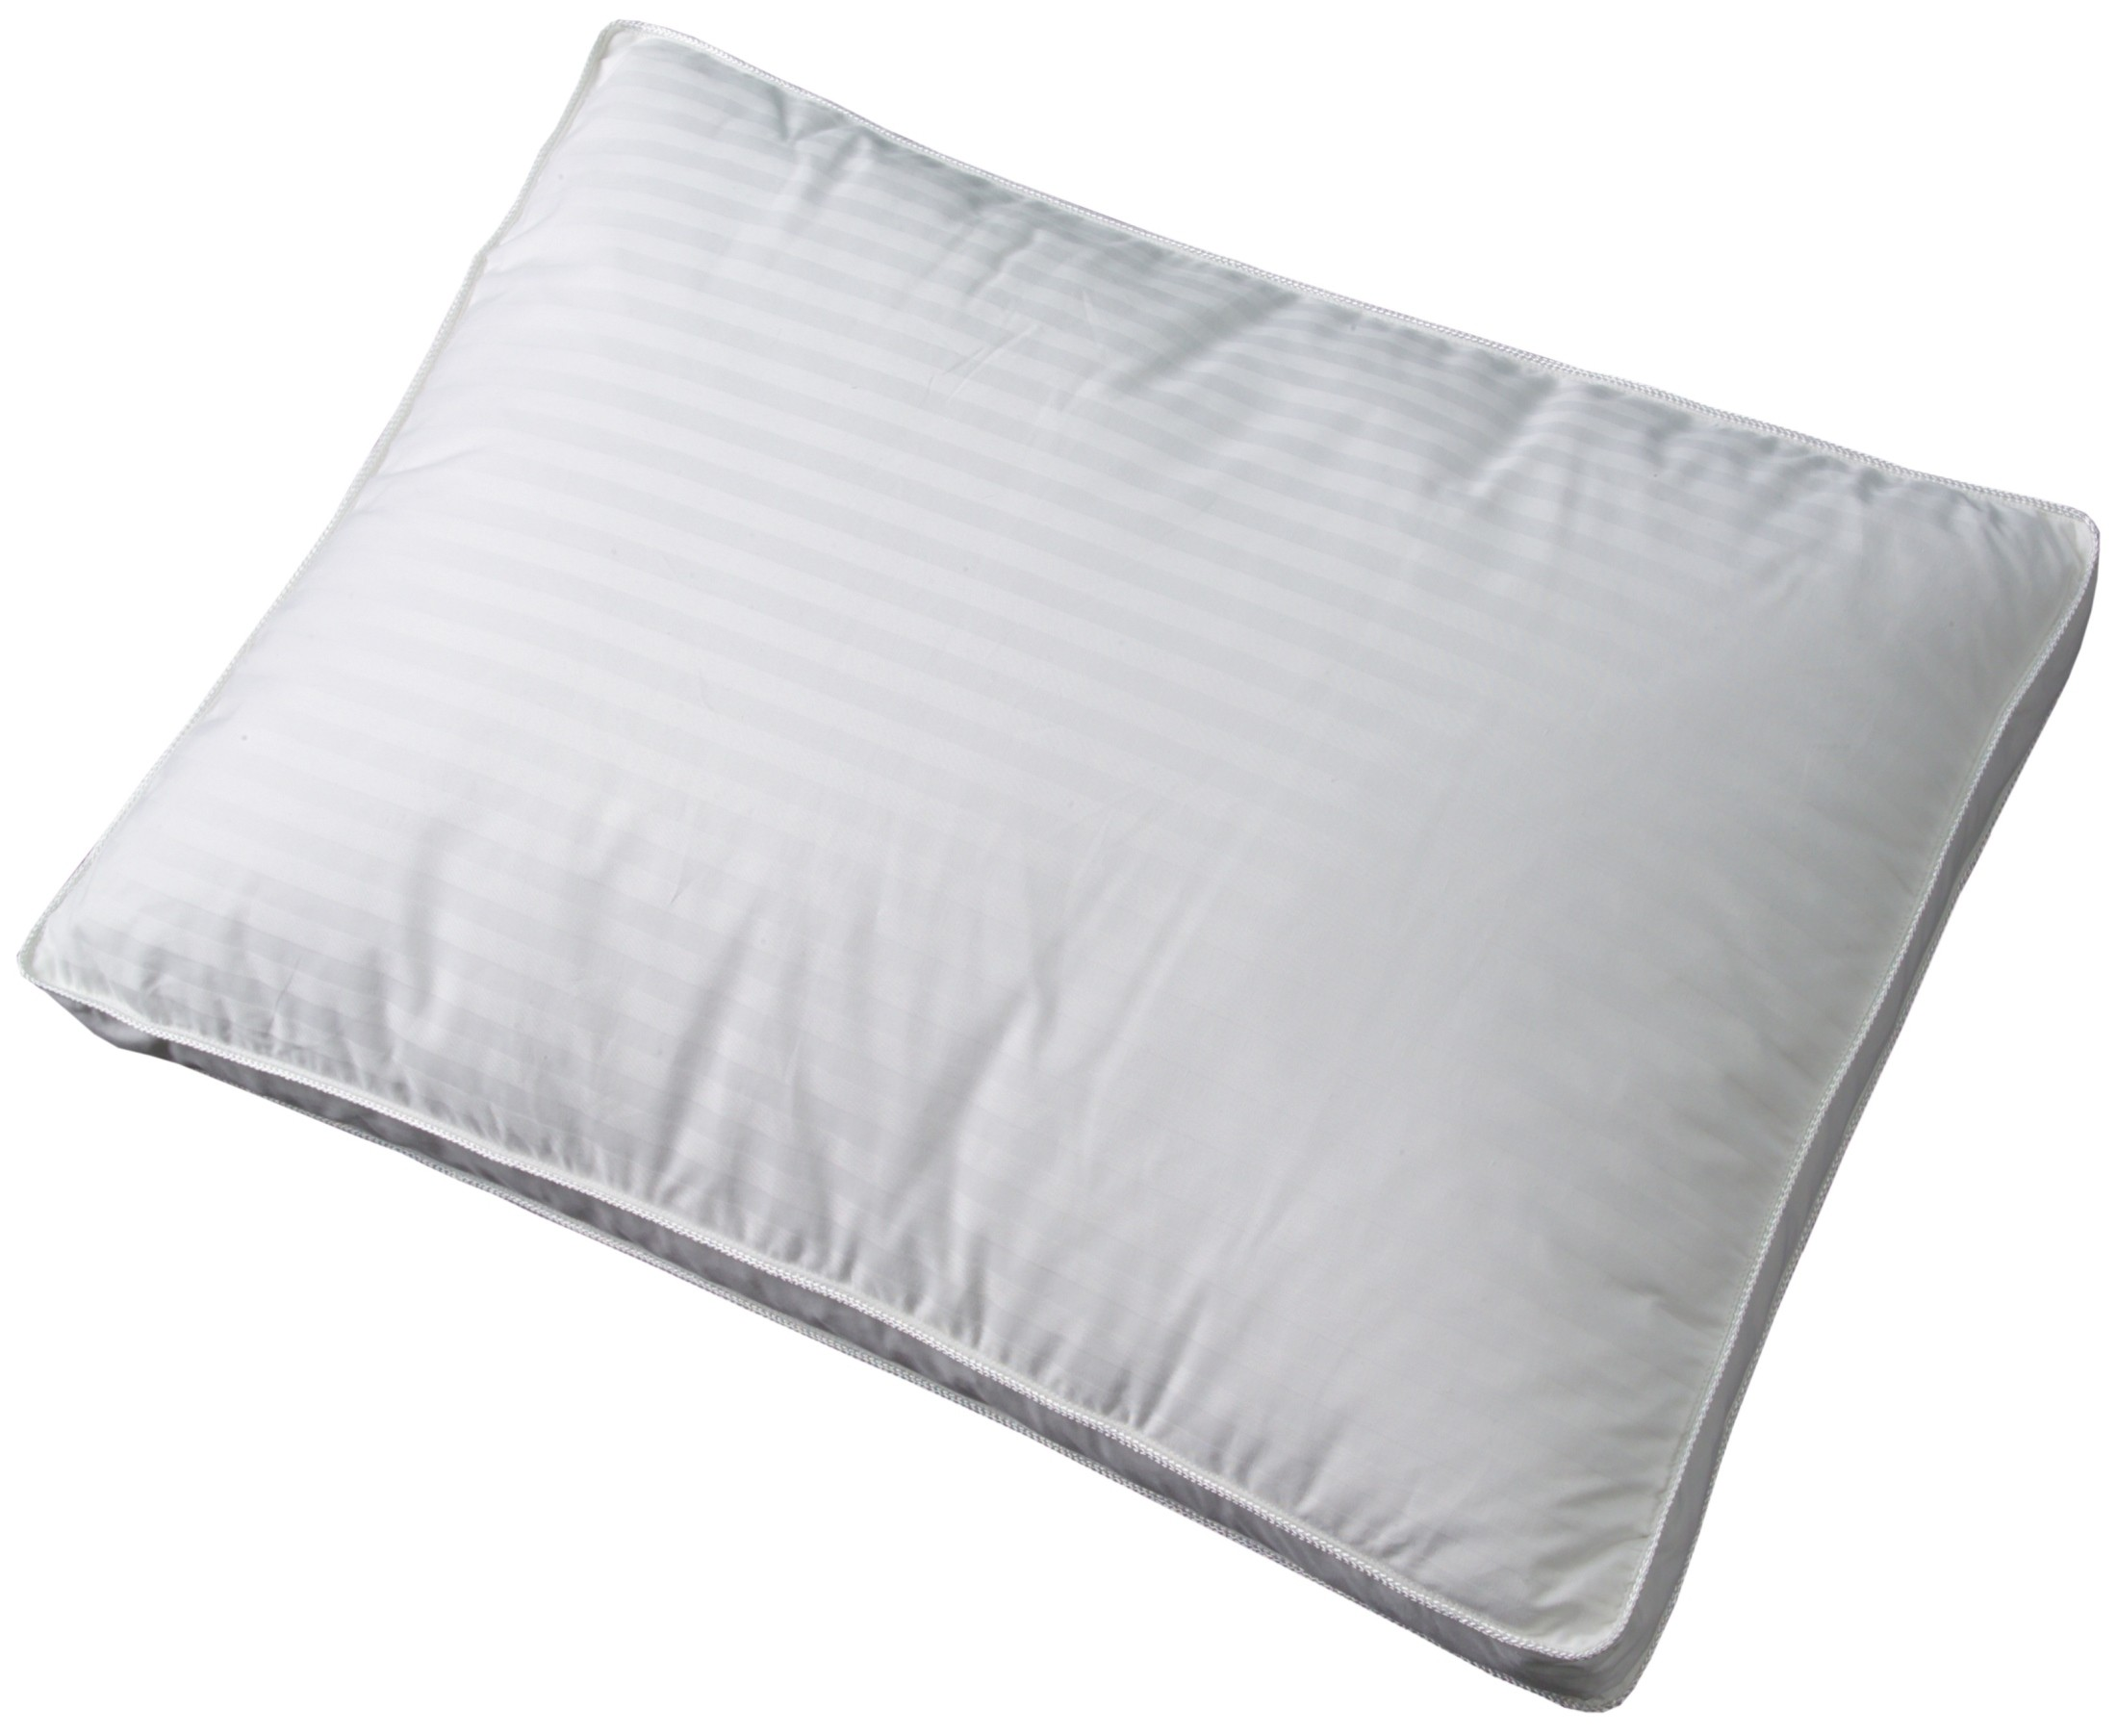 Triple King Size Pillow From Fashion Bed Group Qg